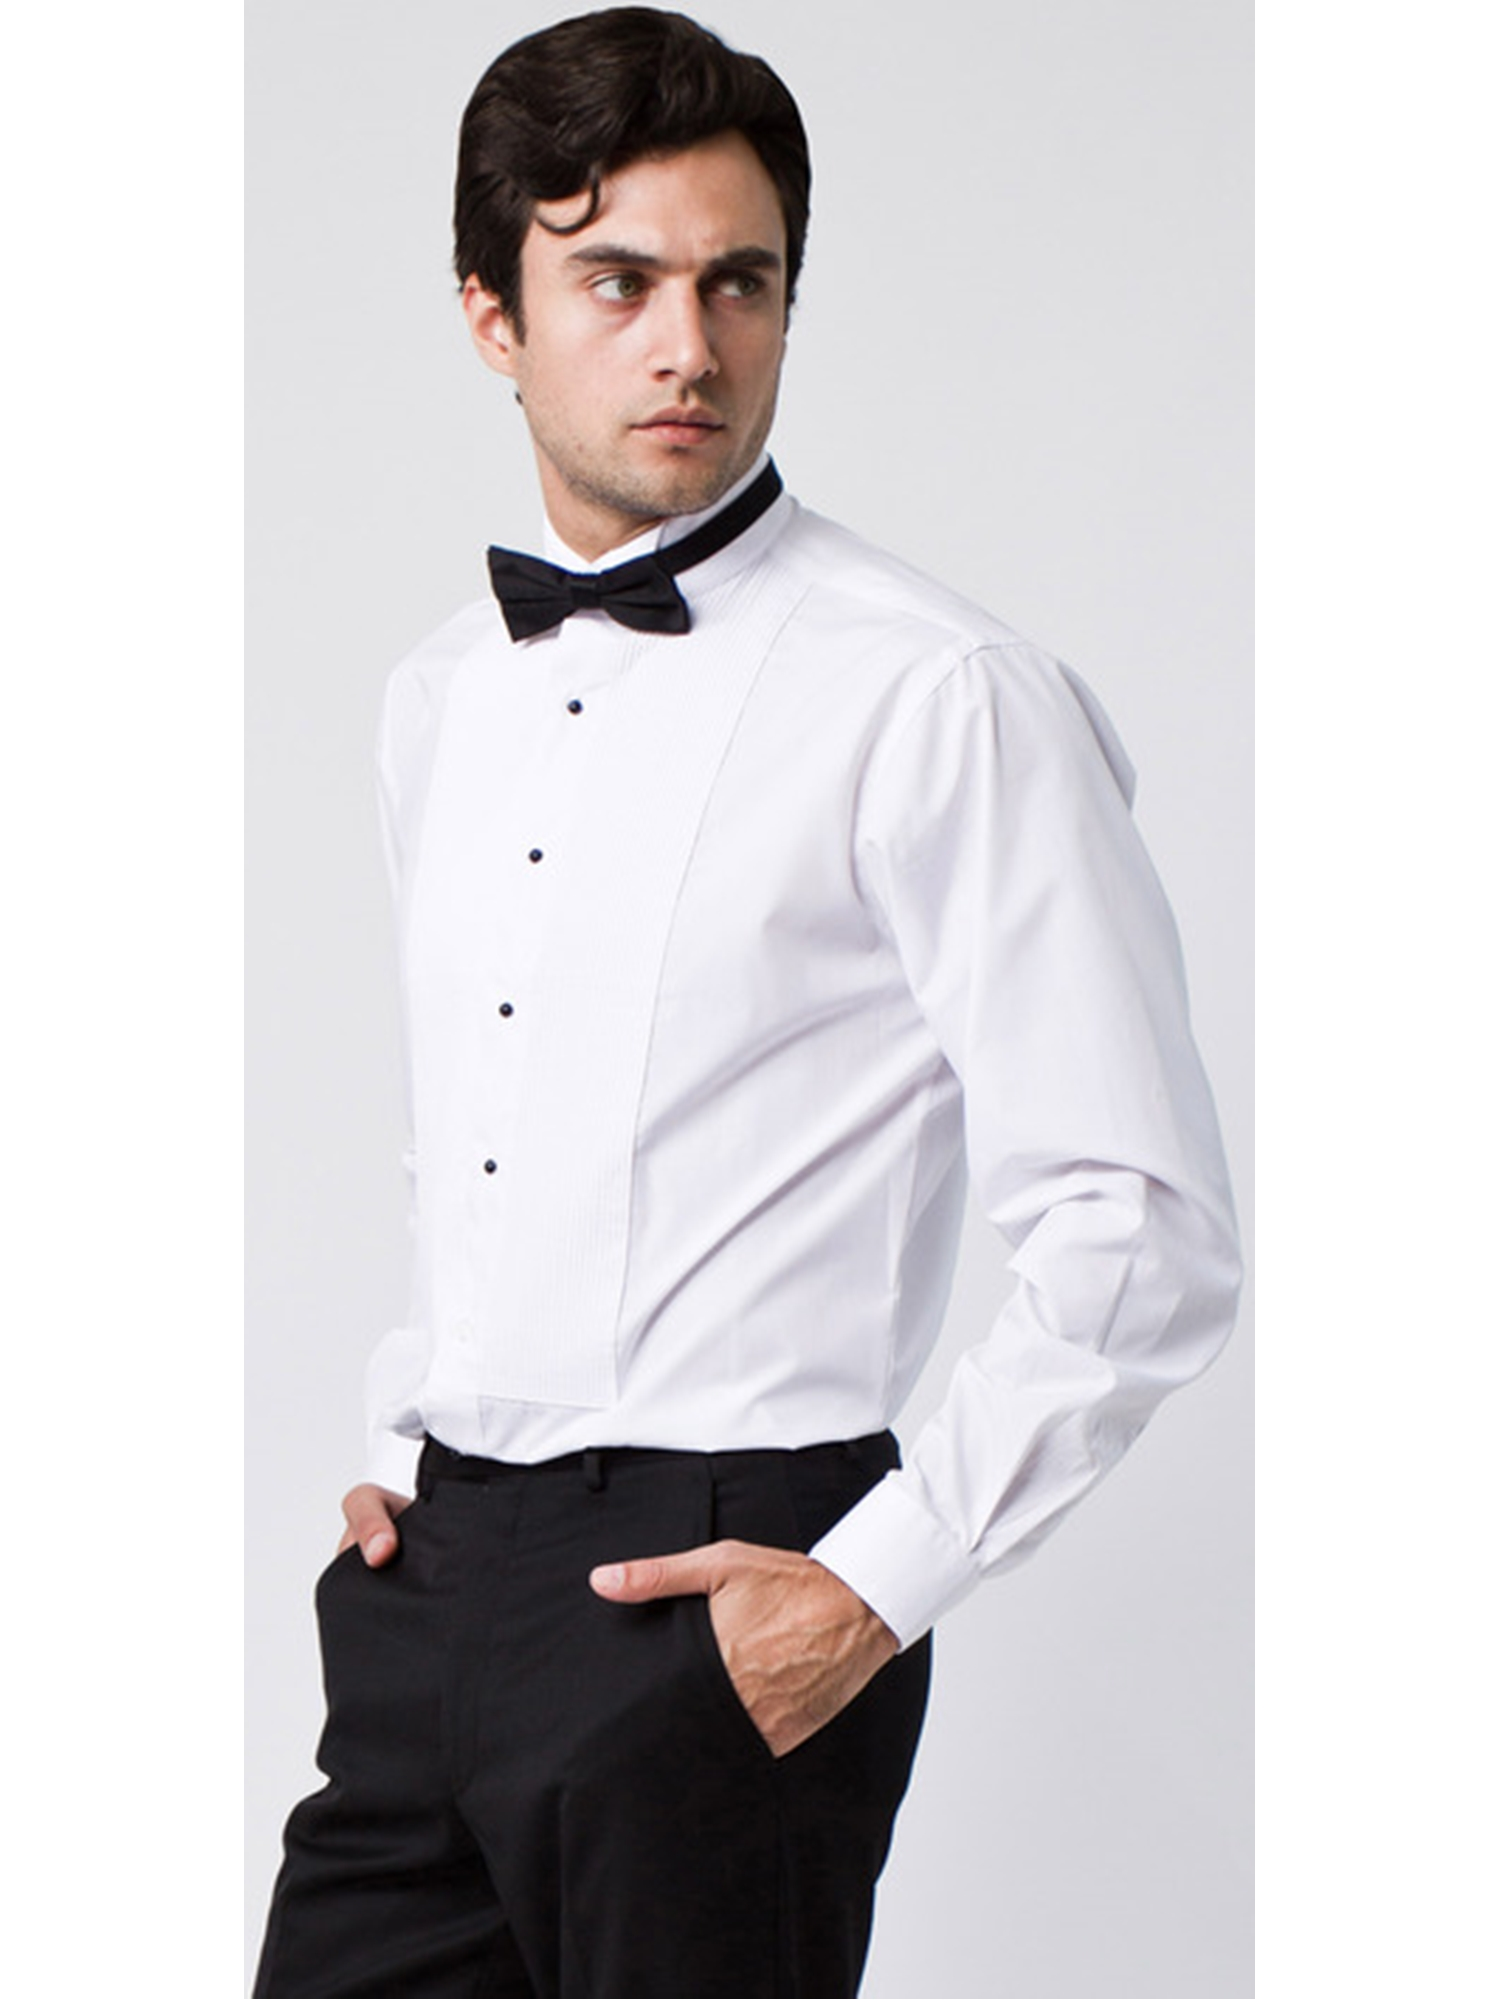 Men's Textured Slim Fit French Cuff Lay down Cotton Tuxedo Shirt